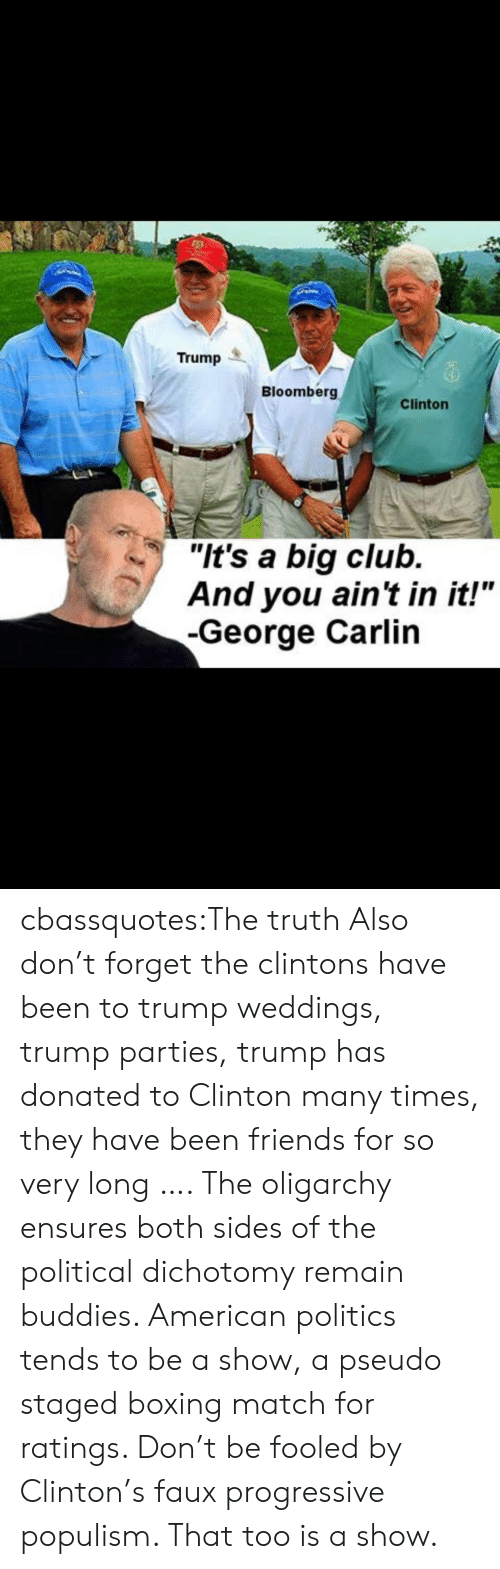 """Trump: Trump  Bloomberg  Clinton  """"It's a big club.  And you ain't in it!""""  -George Carlin cbassquotes:The truth Also don't forget the clintons have been to trump weddings, trump parties, trump has donated to Clinton many times, they have been friends for so very long …. The oligarchy ensures both sides of the political dichotomy remain buddies. American politics tends to be a show, a pseudo staged boxing match for ratings. Don't be fooled by Clinton's faux progressive populism. That too is a show."""